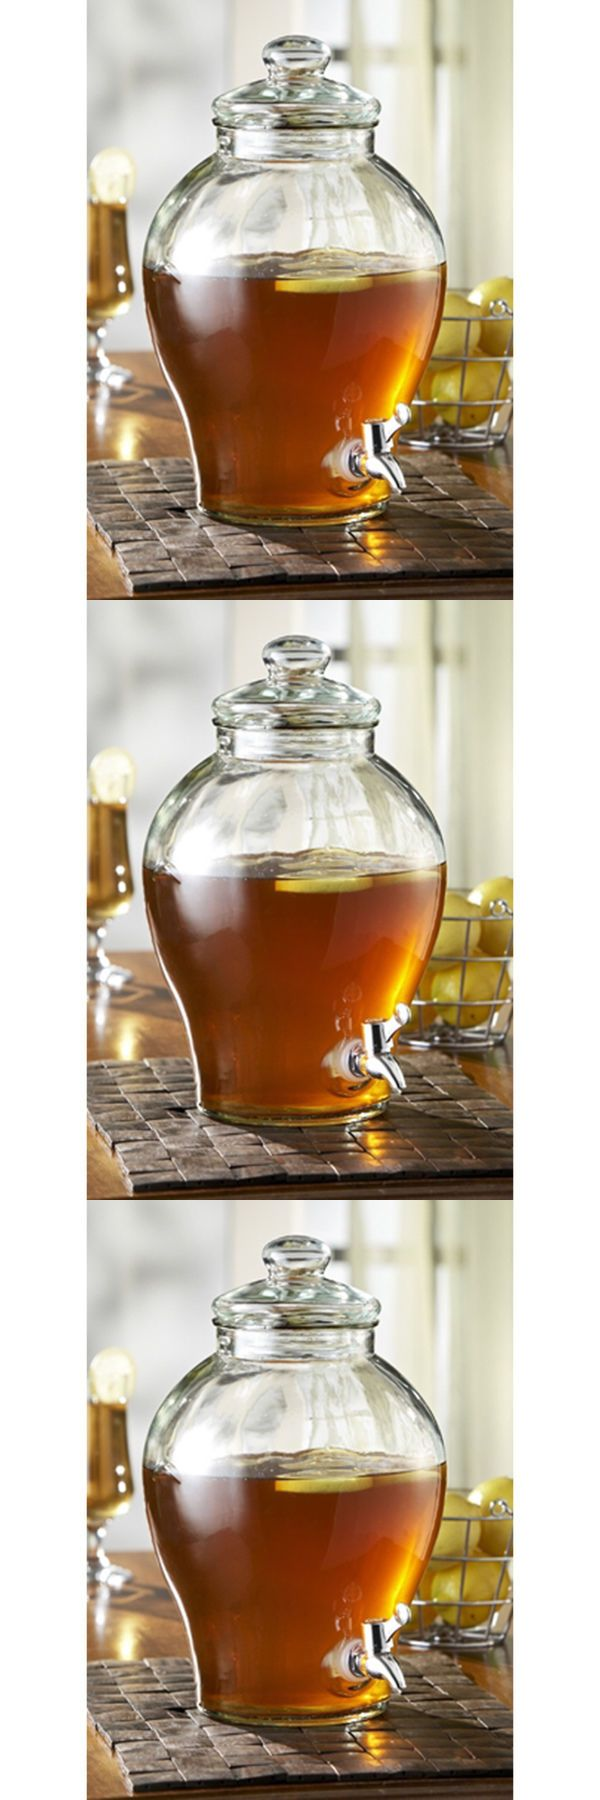 Pitchers 115729: 1.6 Gallon Glass Beverage Dispenser Water Jug Tea Pitcher Free Shipping -> BUY IT NOW ONLY: $41.99 on eBay!